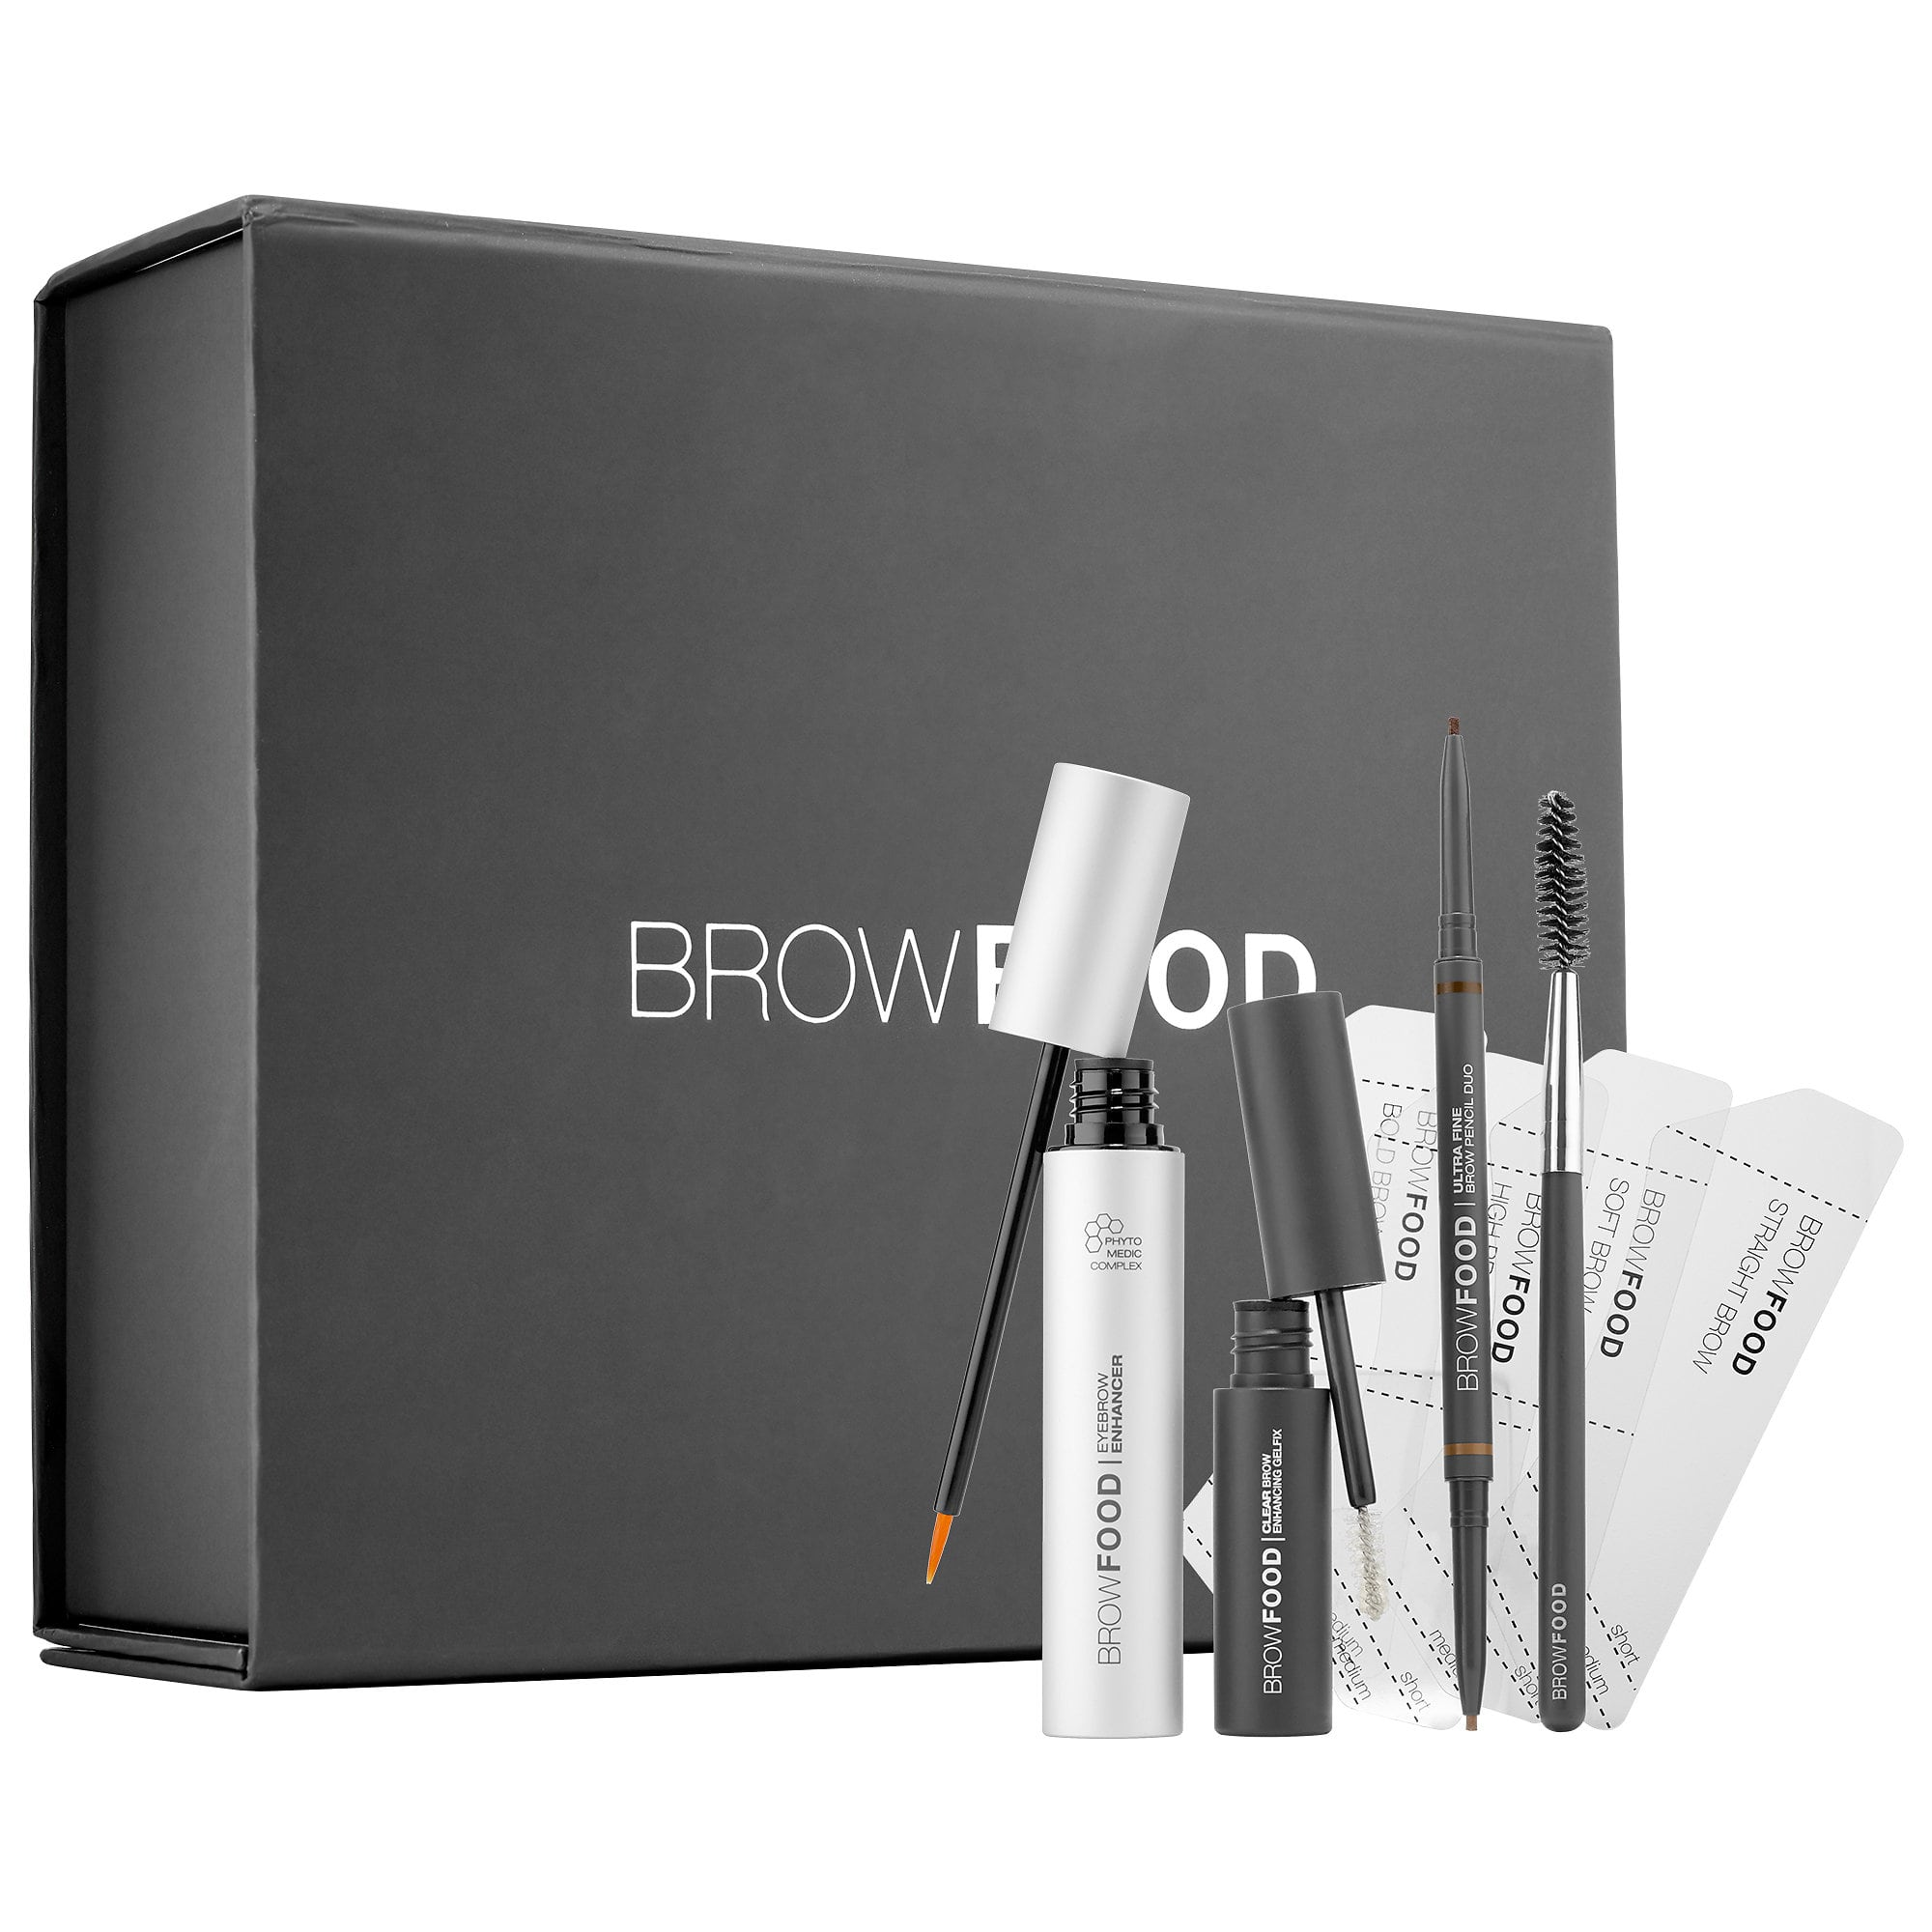 BROWFOOD Brow Transformation System